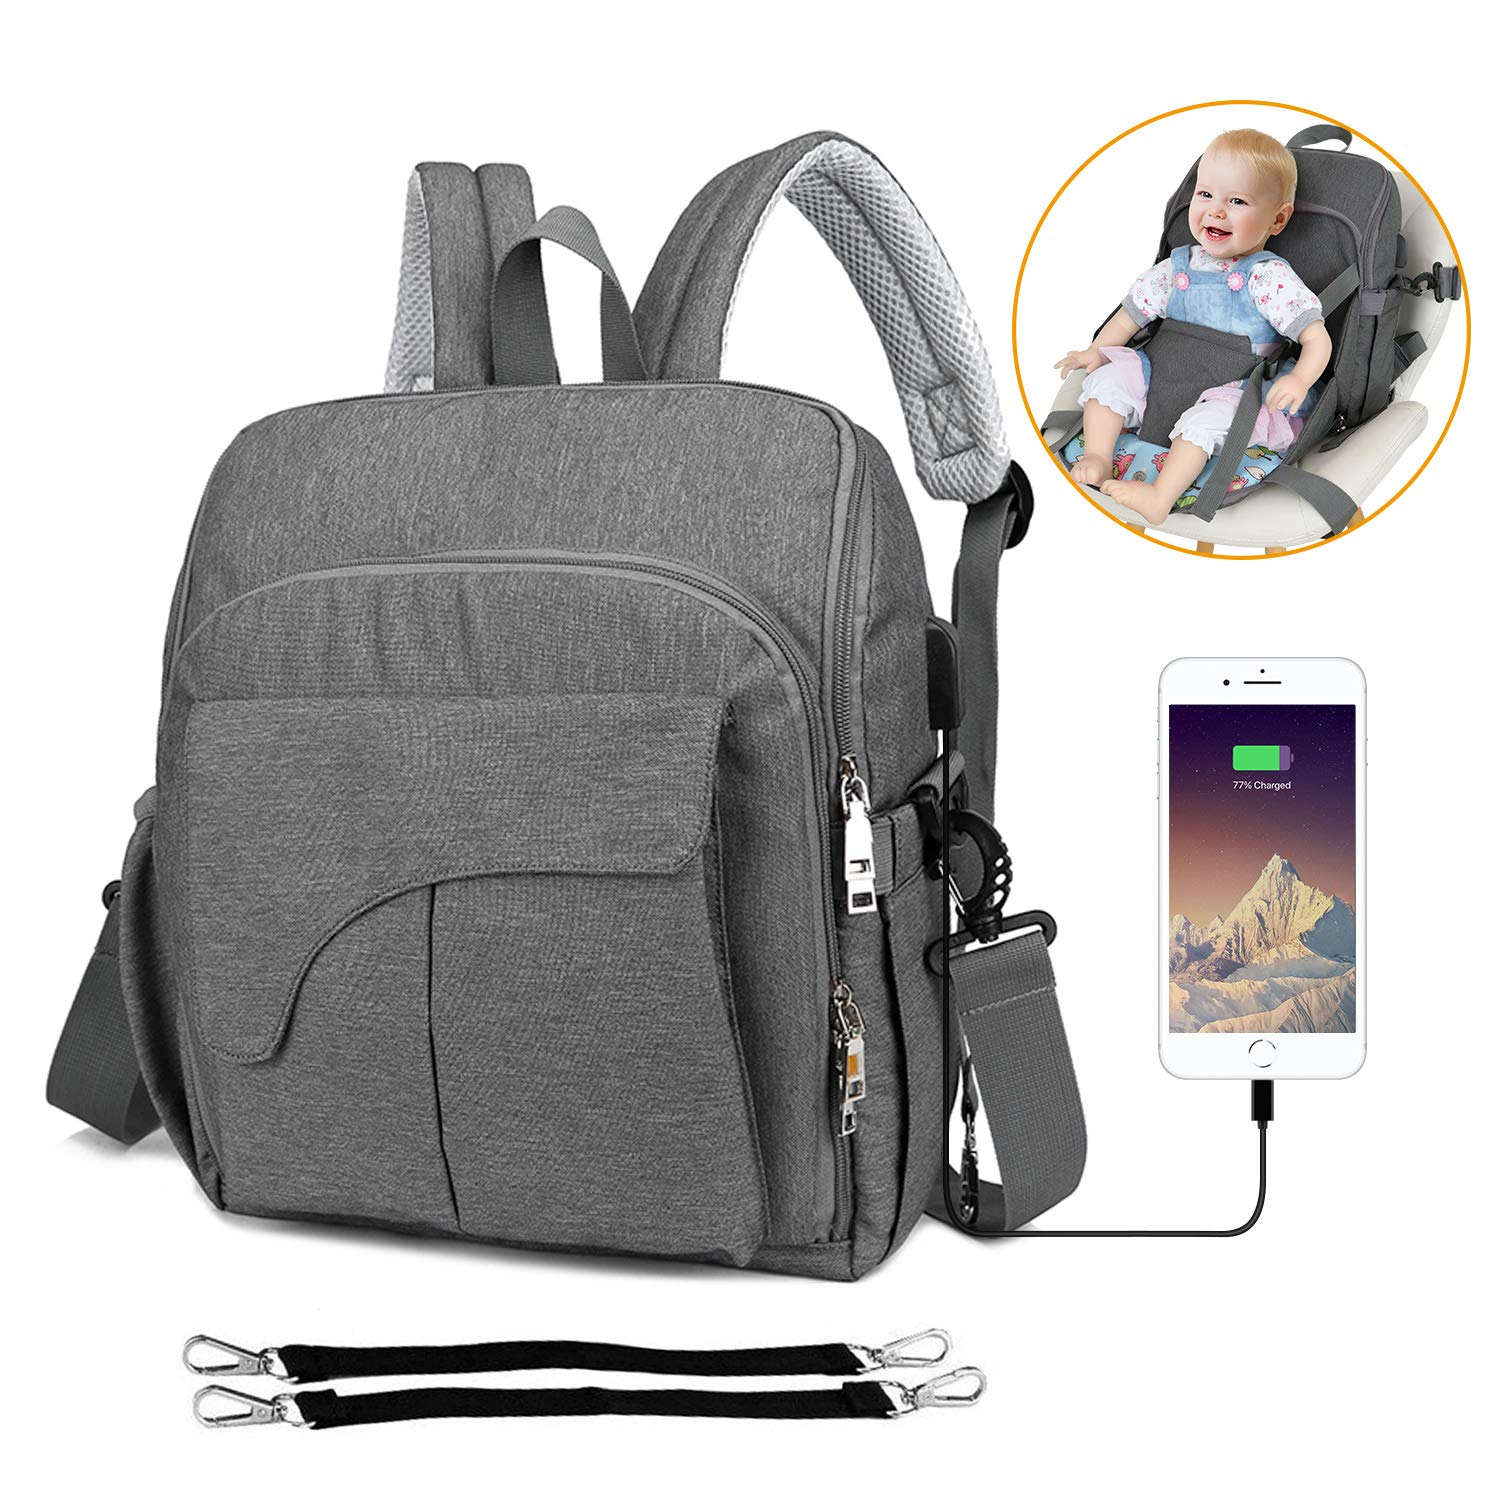 Baby Nappy Changing Bag Diaper Backpack with Baby Seat - Multi-Function Waterproof Bags with USB Charging Port Mom's All-Around Helper Changing Bag